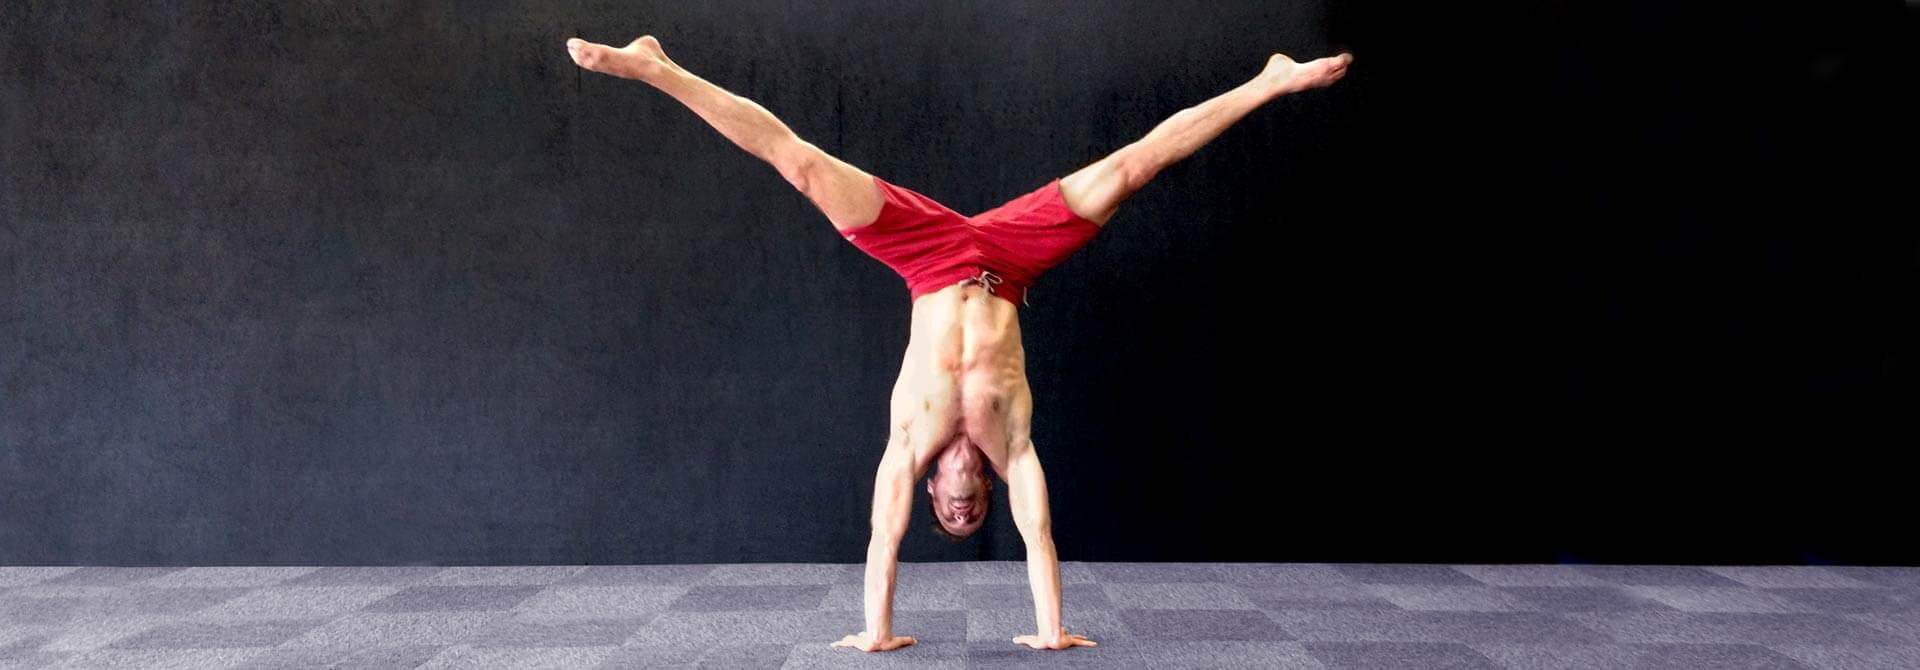 GymnasticBodies athlete shows that handstands are not just for the young guns.